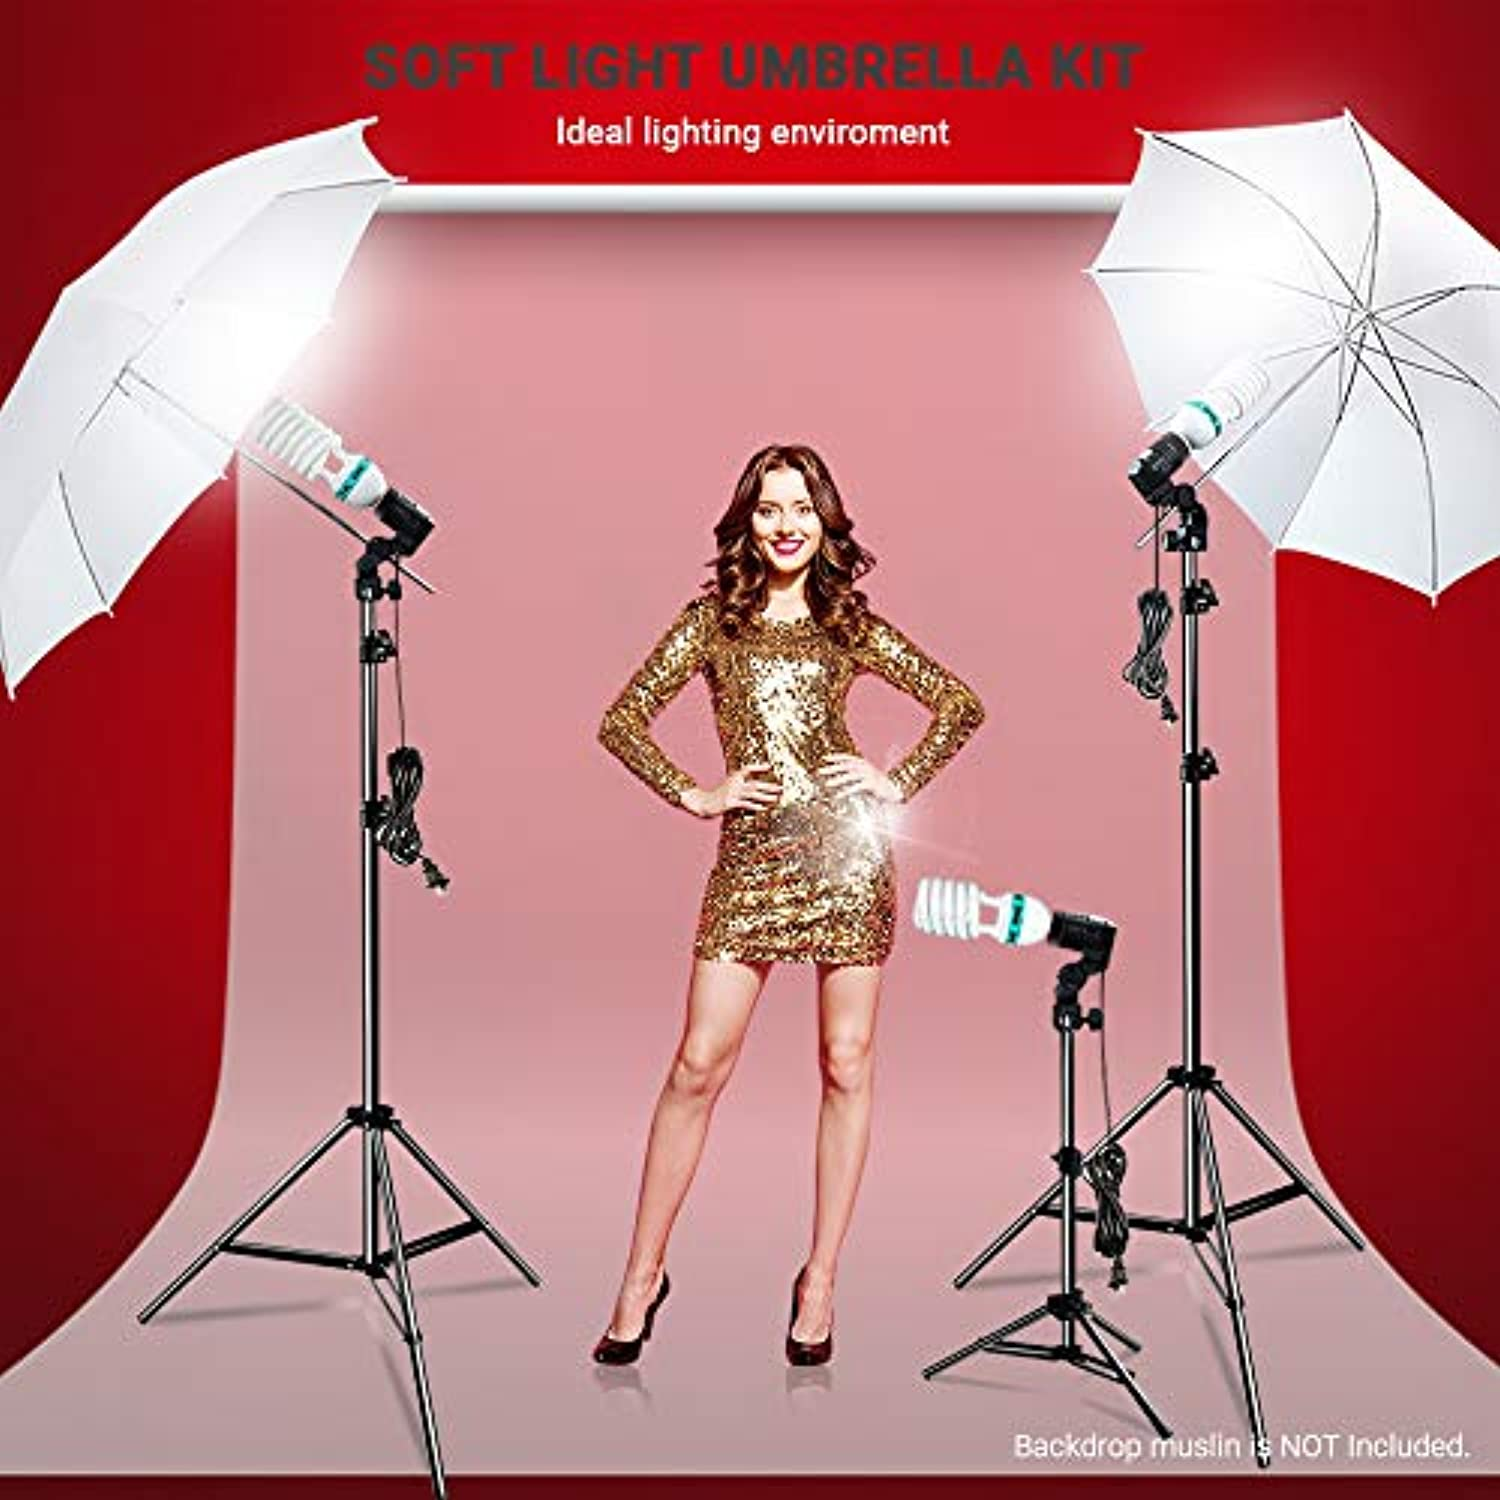 Classier: Buy Brand: LimoStudio LimoStudio Photography Photo Portrait Studio 660W Day Light Umbrella Continuous Lighting Kit, LMS103